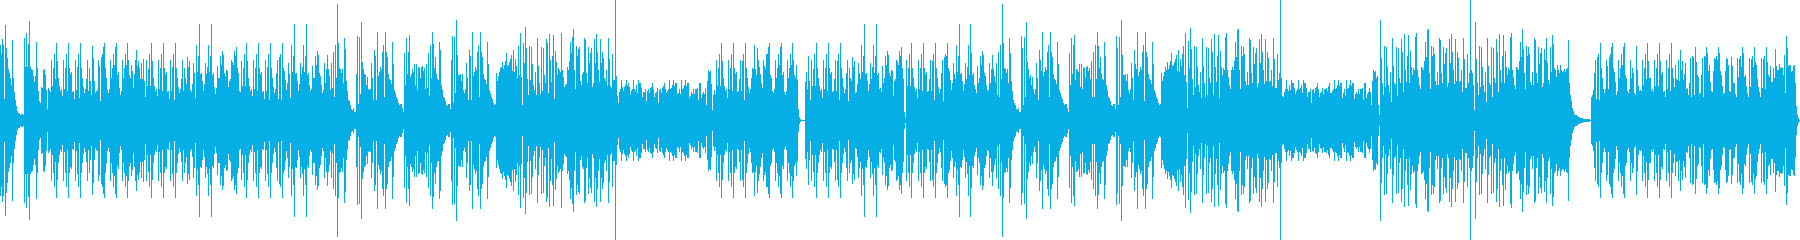 Piano solo full of exhilaration's reproduced waveform